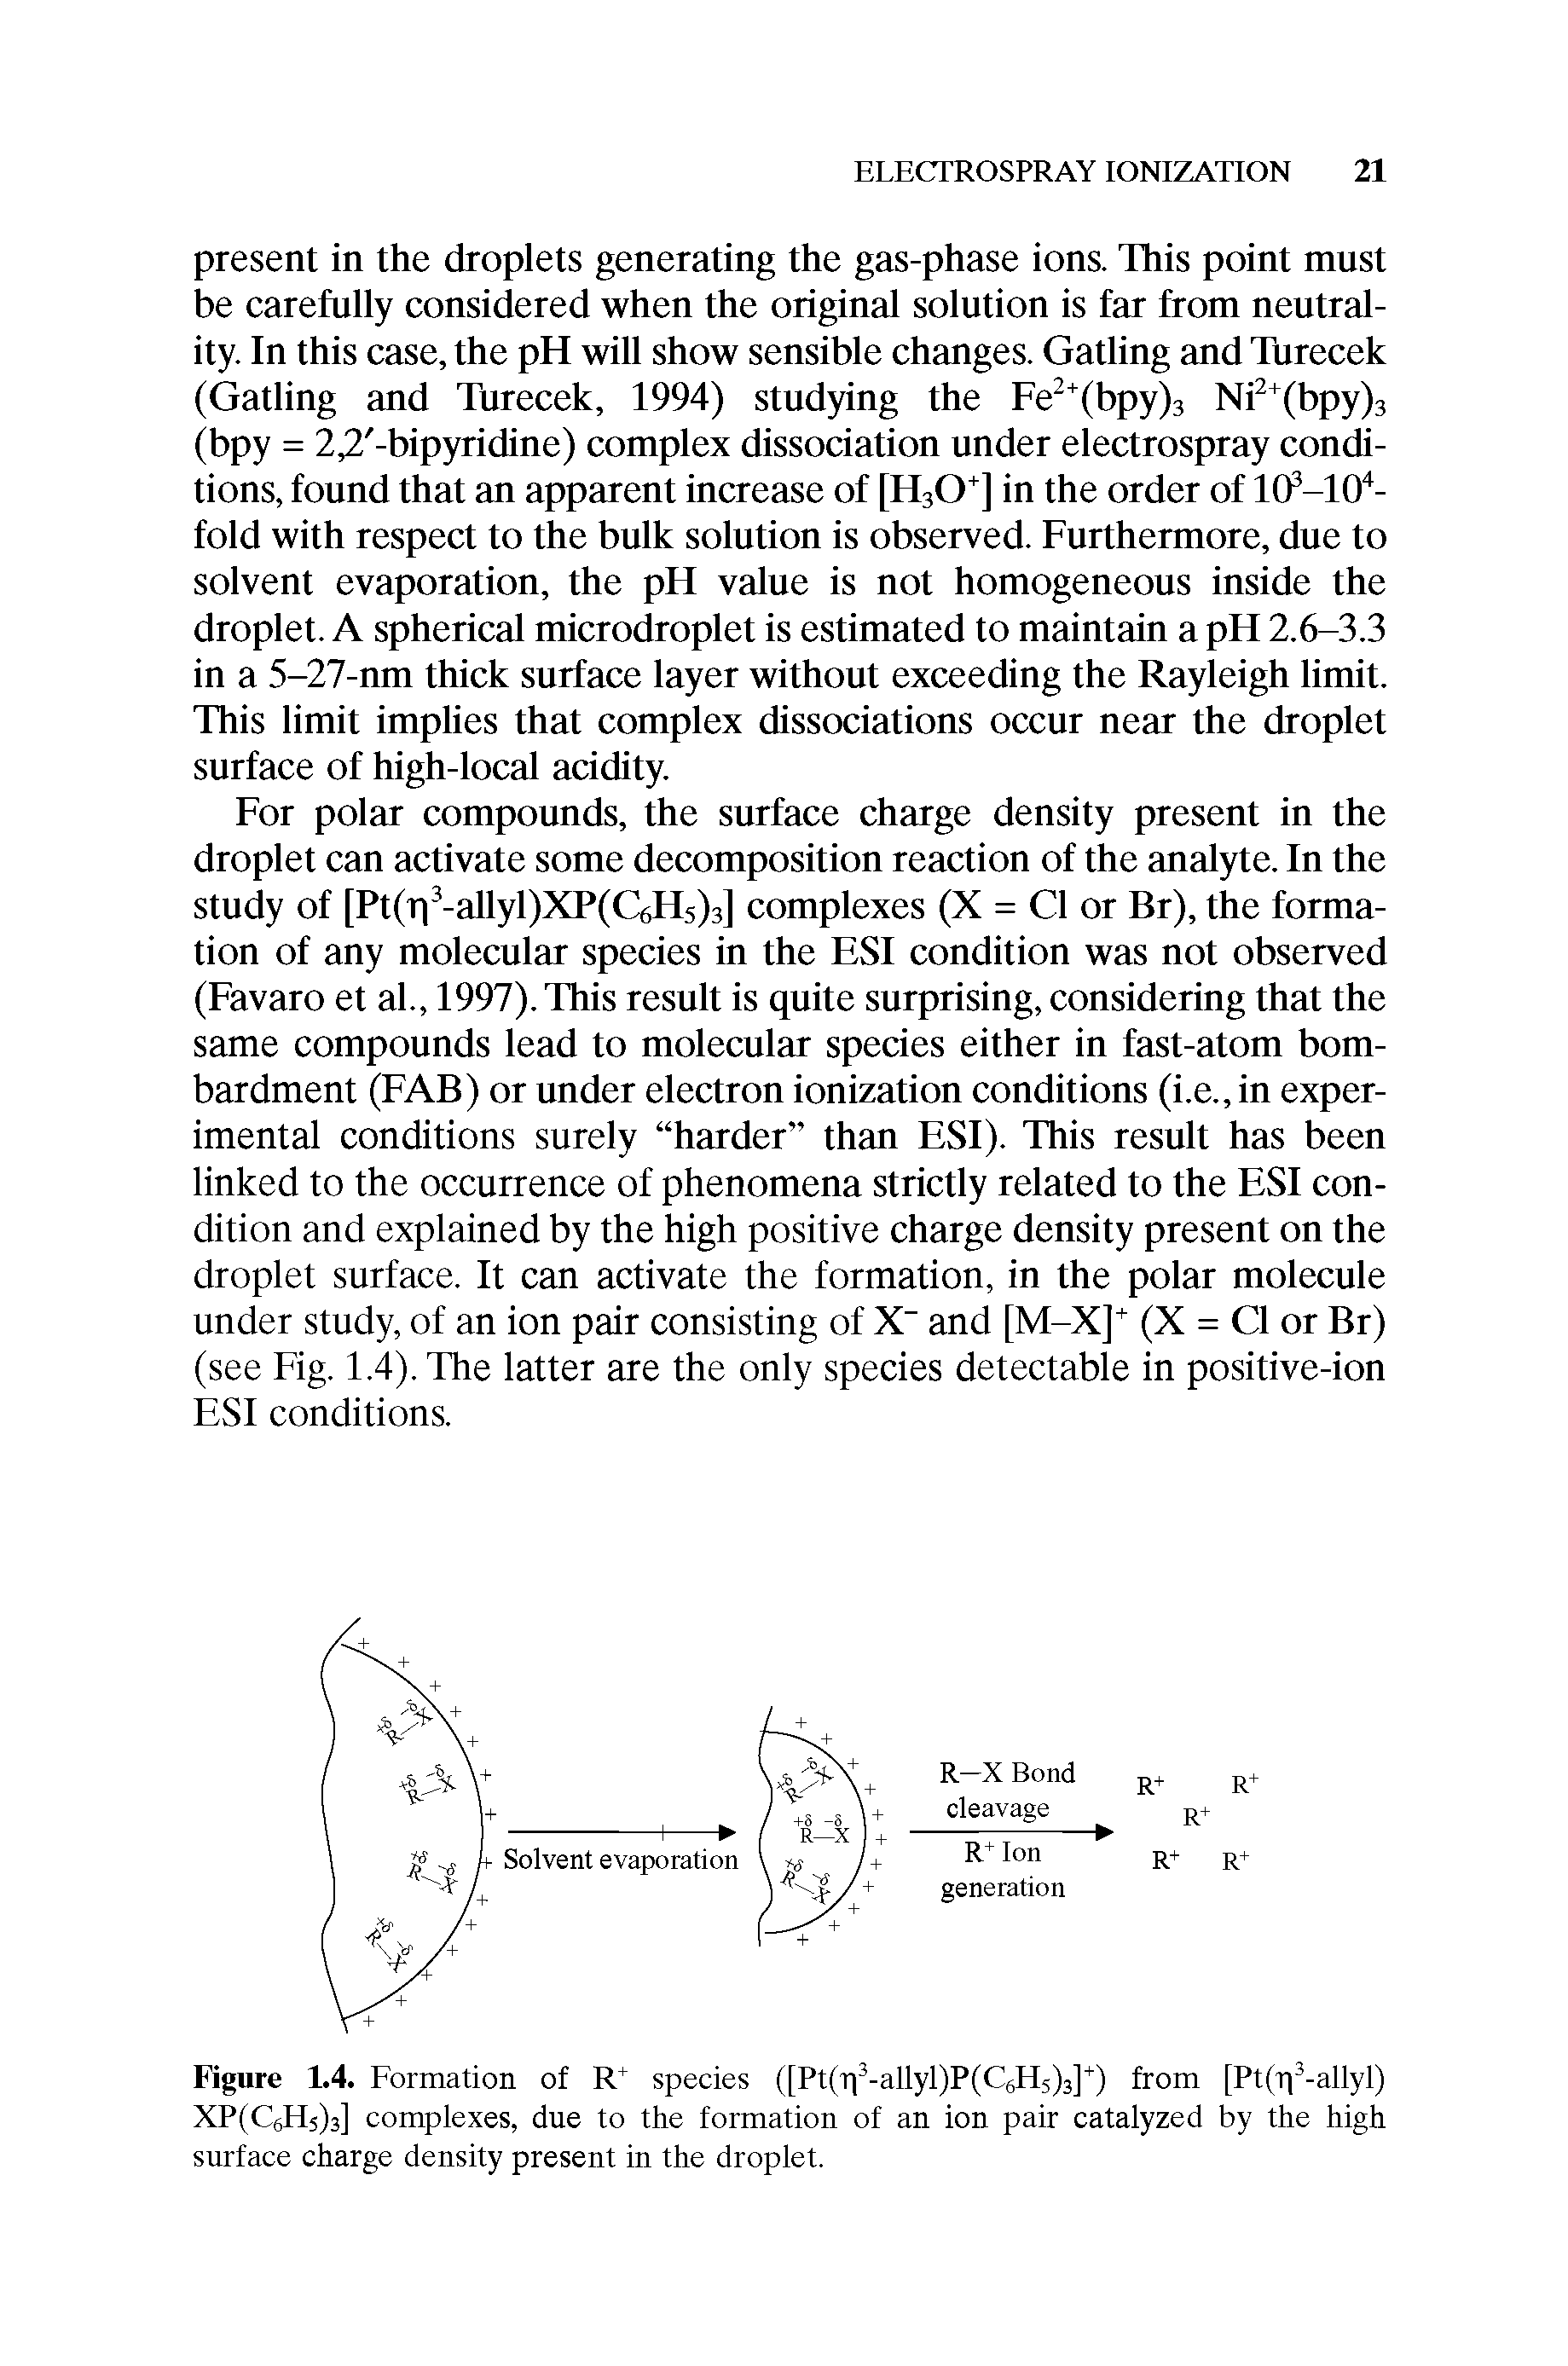 Figure 1.4. Formation of R+ species ([Pt(T 3-allyl)P(C6H5)3]+) from [Pt(r 3-allyl) XP(C6Hs)3] complexes, due to the formation of an ion pair catalyzed by the high surface charge density present in the droplet.